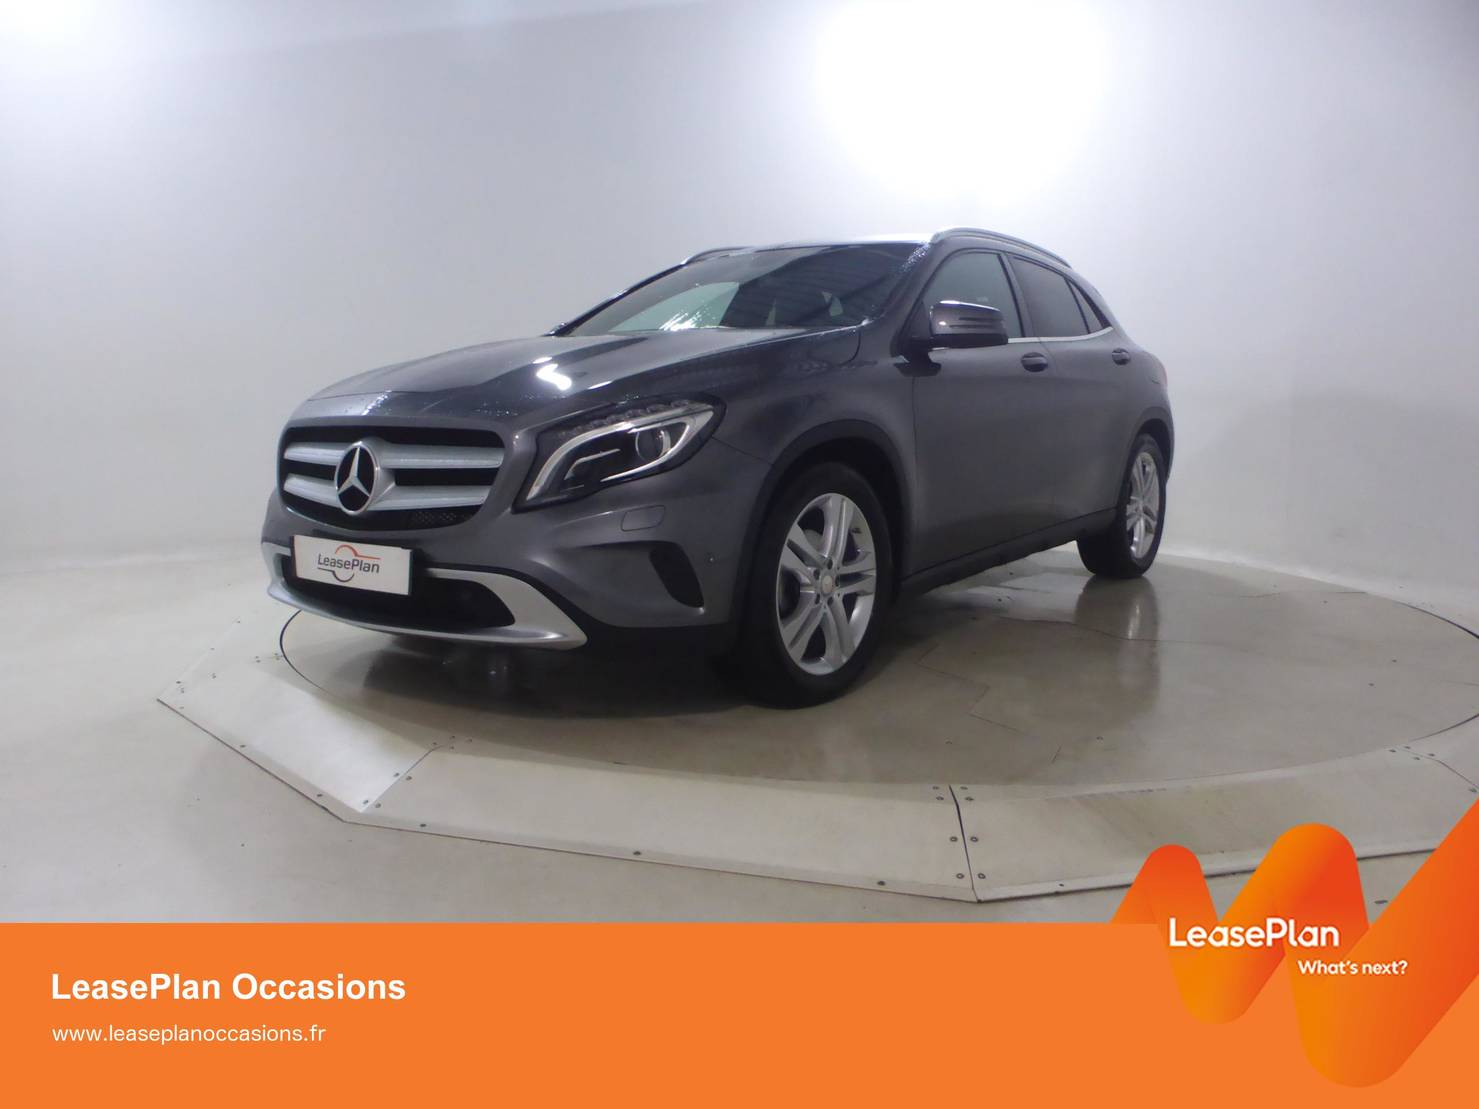 Mercedes-Benz GLA-Klasse 220 CDI 4-Matic, Sensation 7-G DCT A detail1